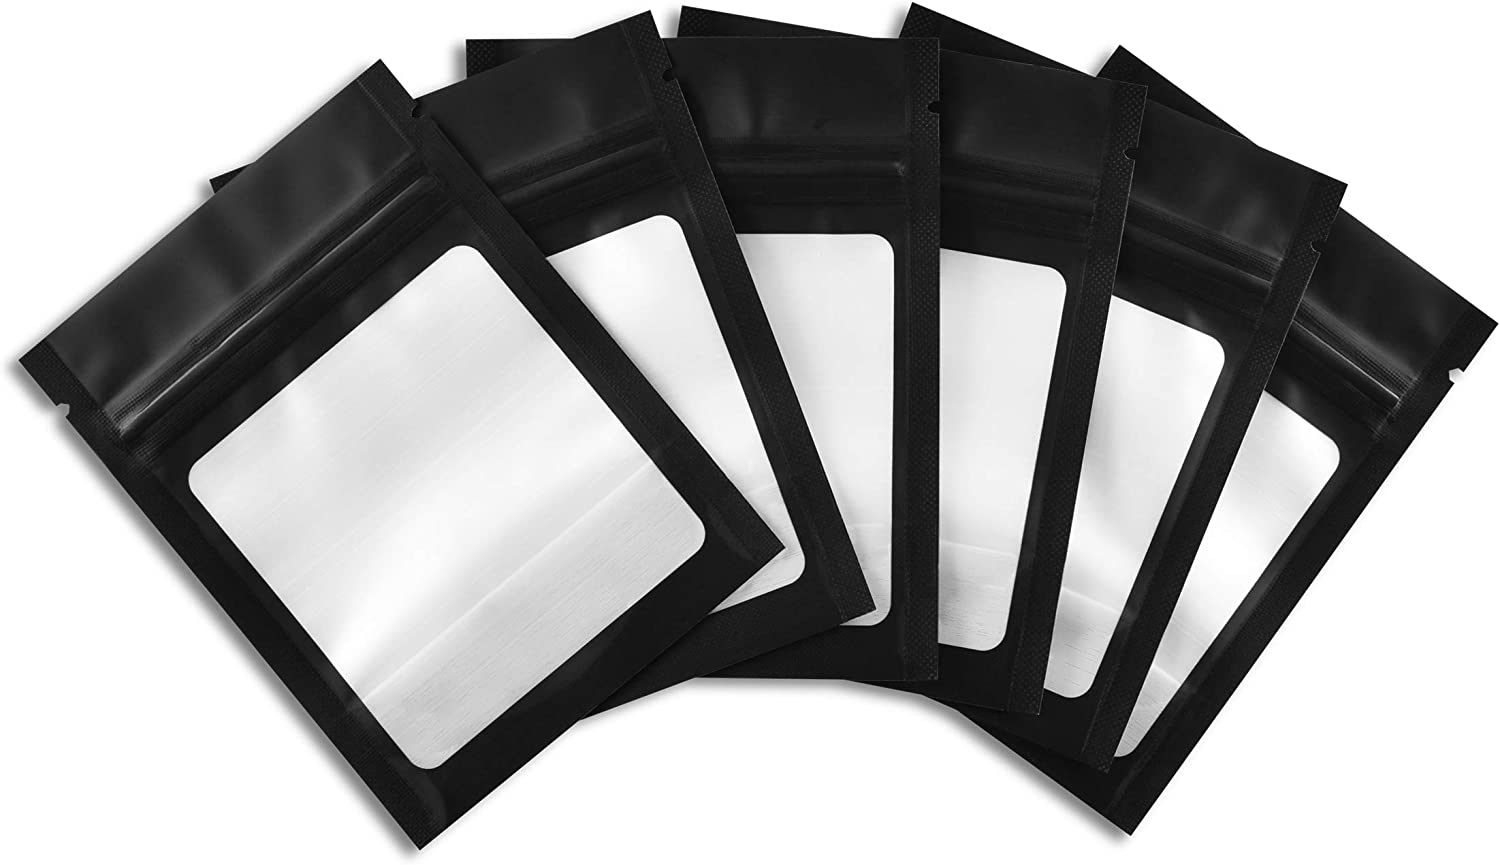 COLSEN 3 x 4 Inches 100 Pack Smell Proof Mylar Resealable Foil Pouch Bags - Food Safe Airtight Ziplock (Matte Black with Clear Window)